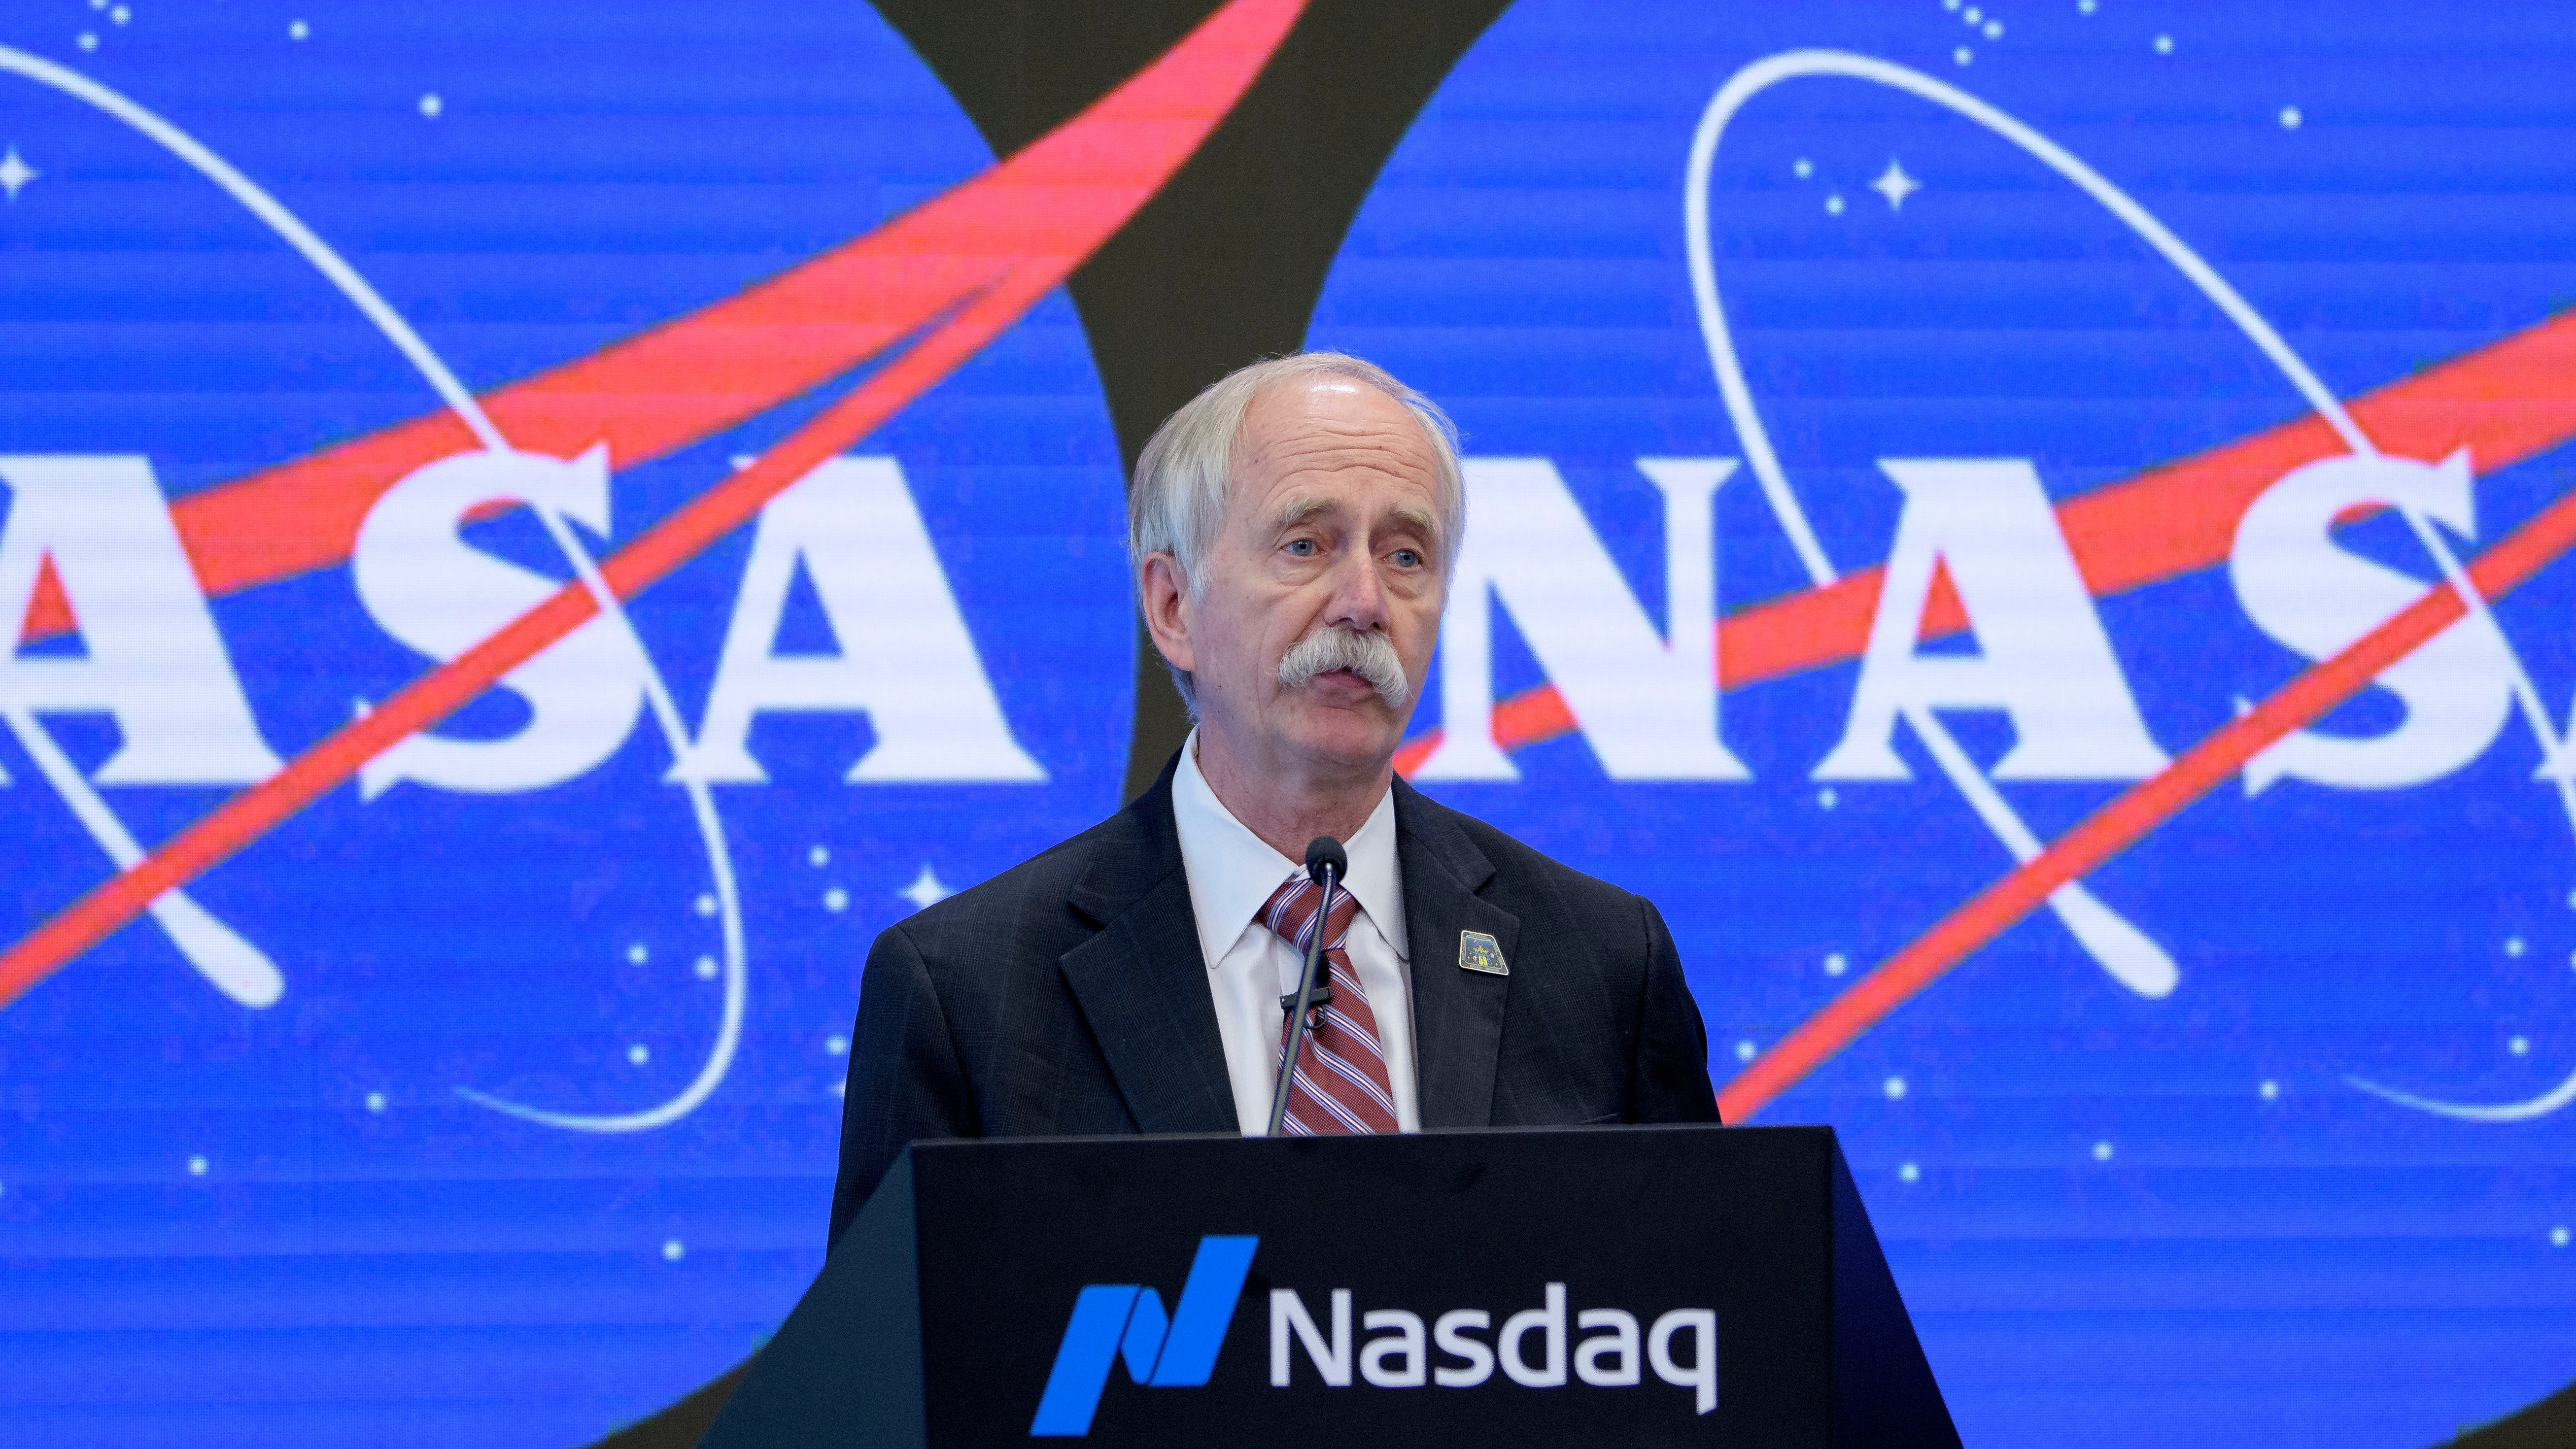 NASA Abruptly Reassigns Top Human Exploration Program Officials As Trump Moon Mandate Looms